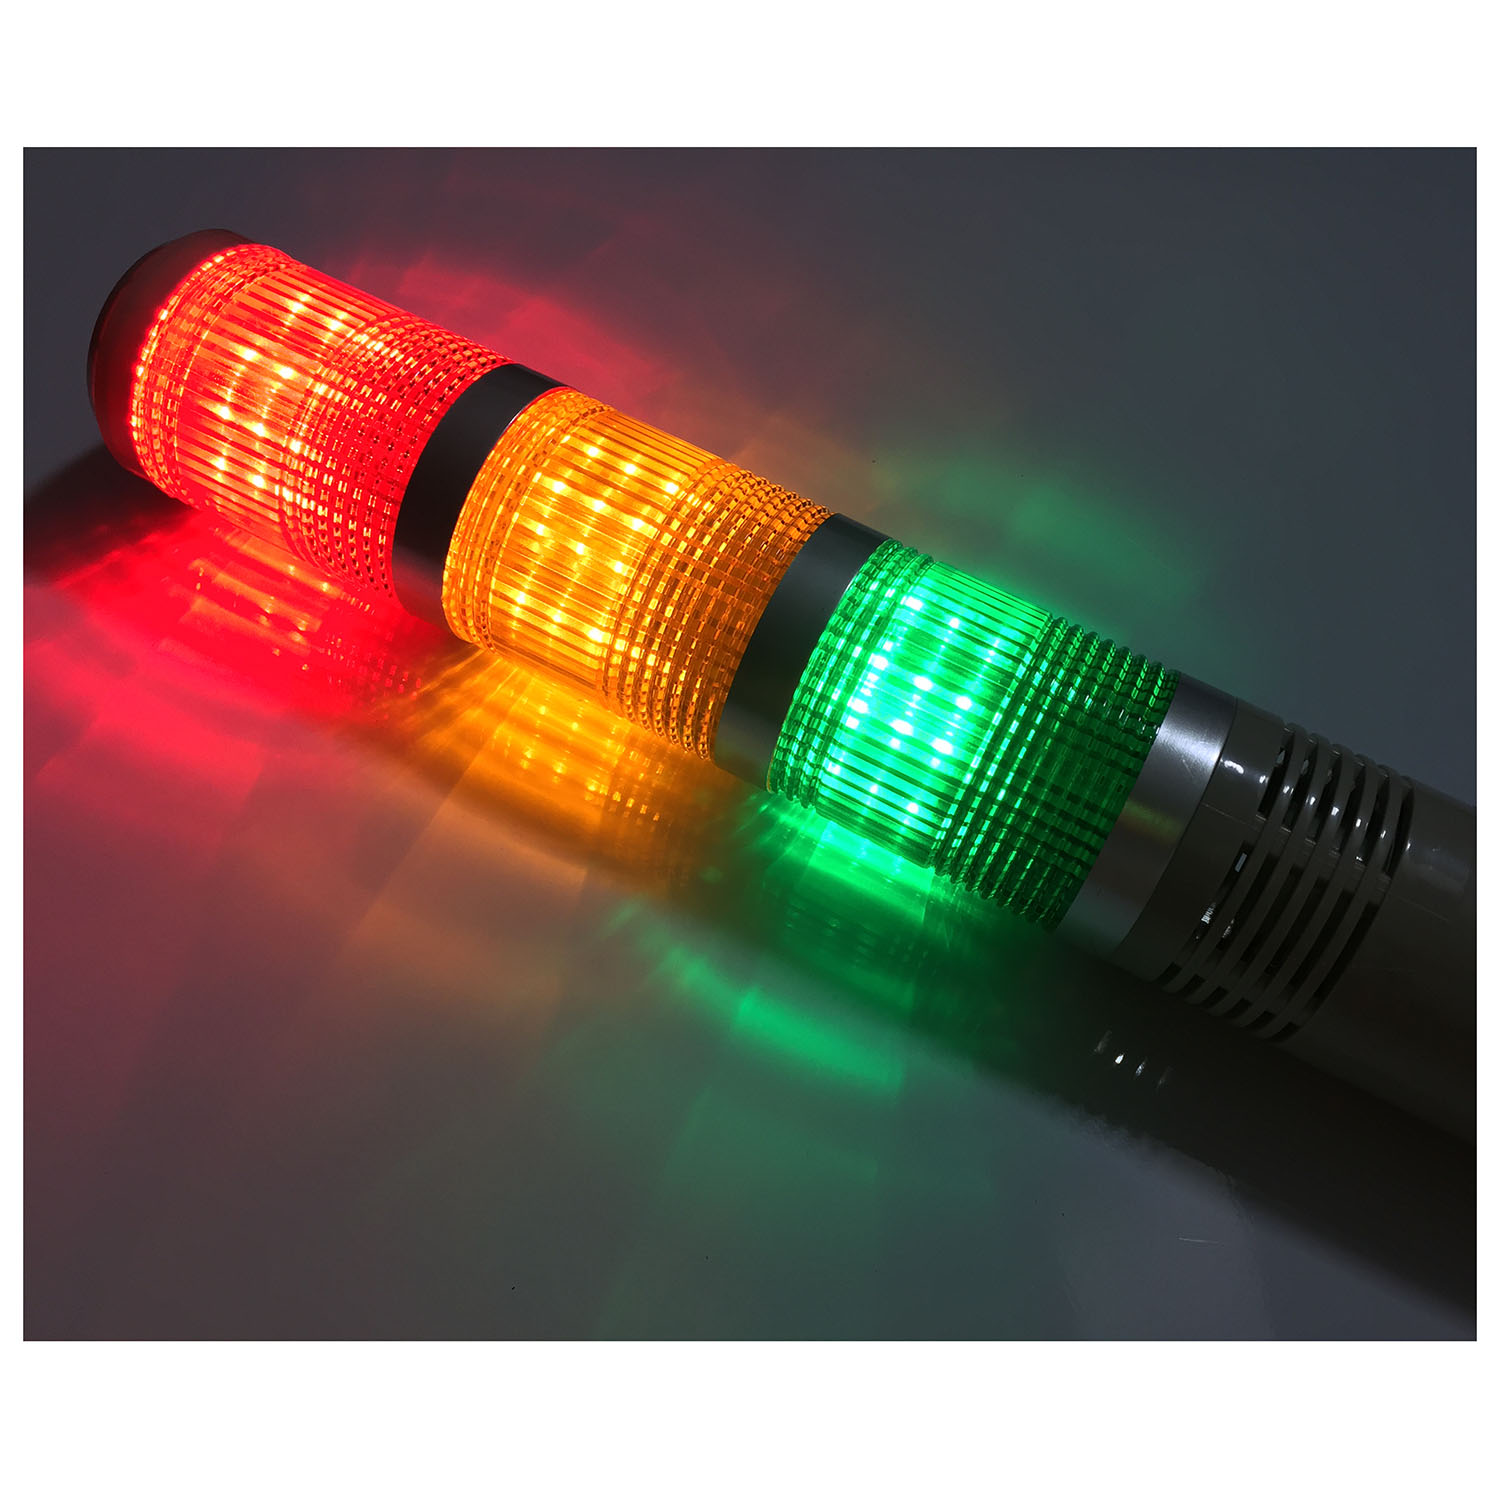 Promotion! AC/DC 24V Red Green Yellow LED Lamp Industrial